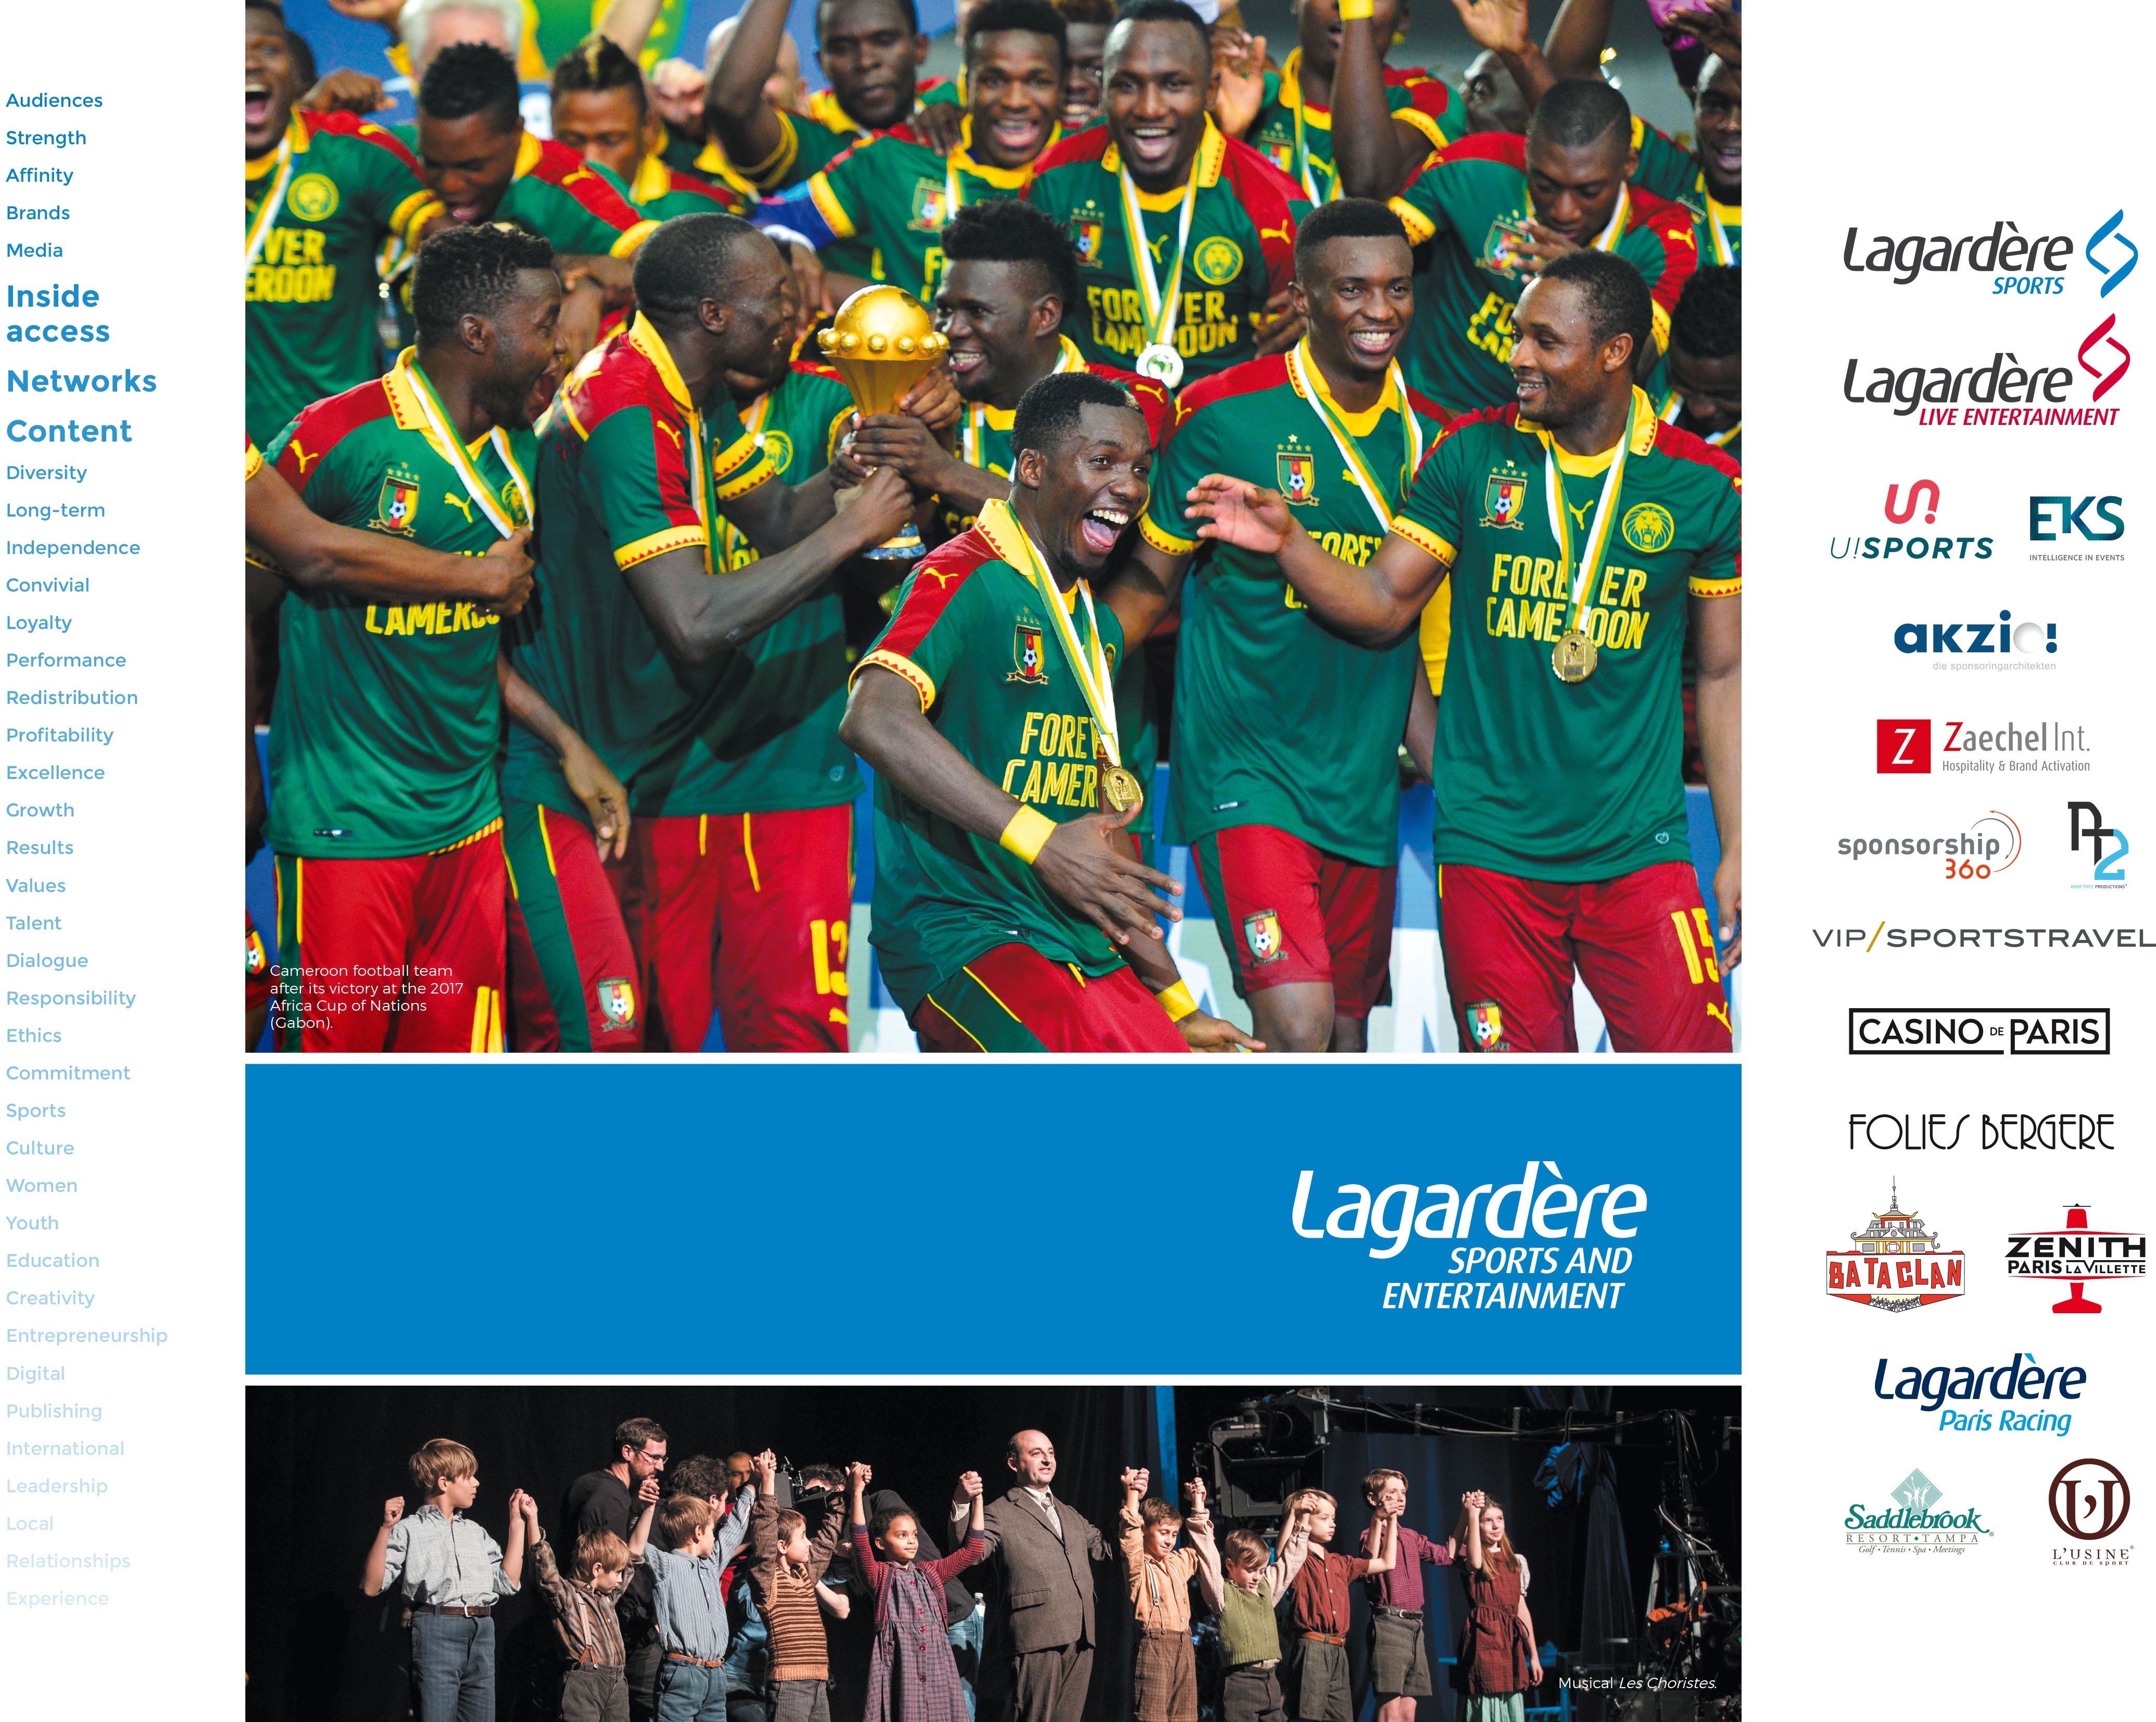 Lagardère Sports and Entertainment - Above: Cameroon football team after its victory at the 2017 Africa Cup of Nations (Gabon) - Below: Musical Les Choristes